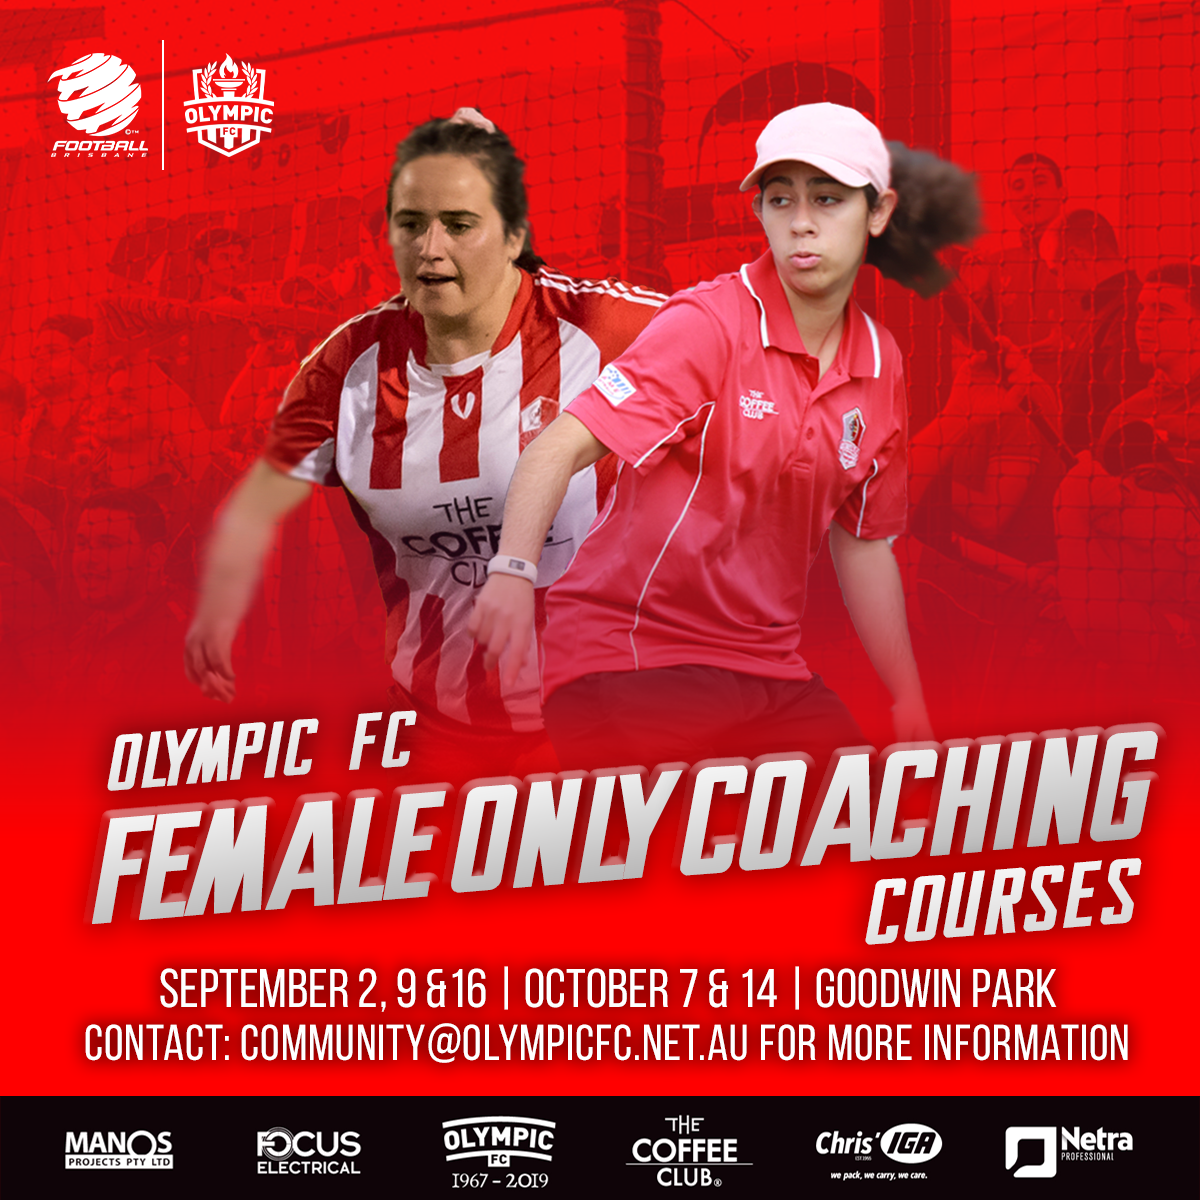 Female Only Coaching Courses